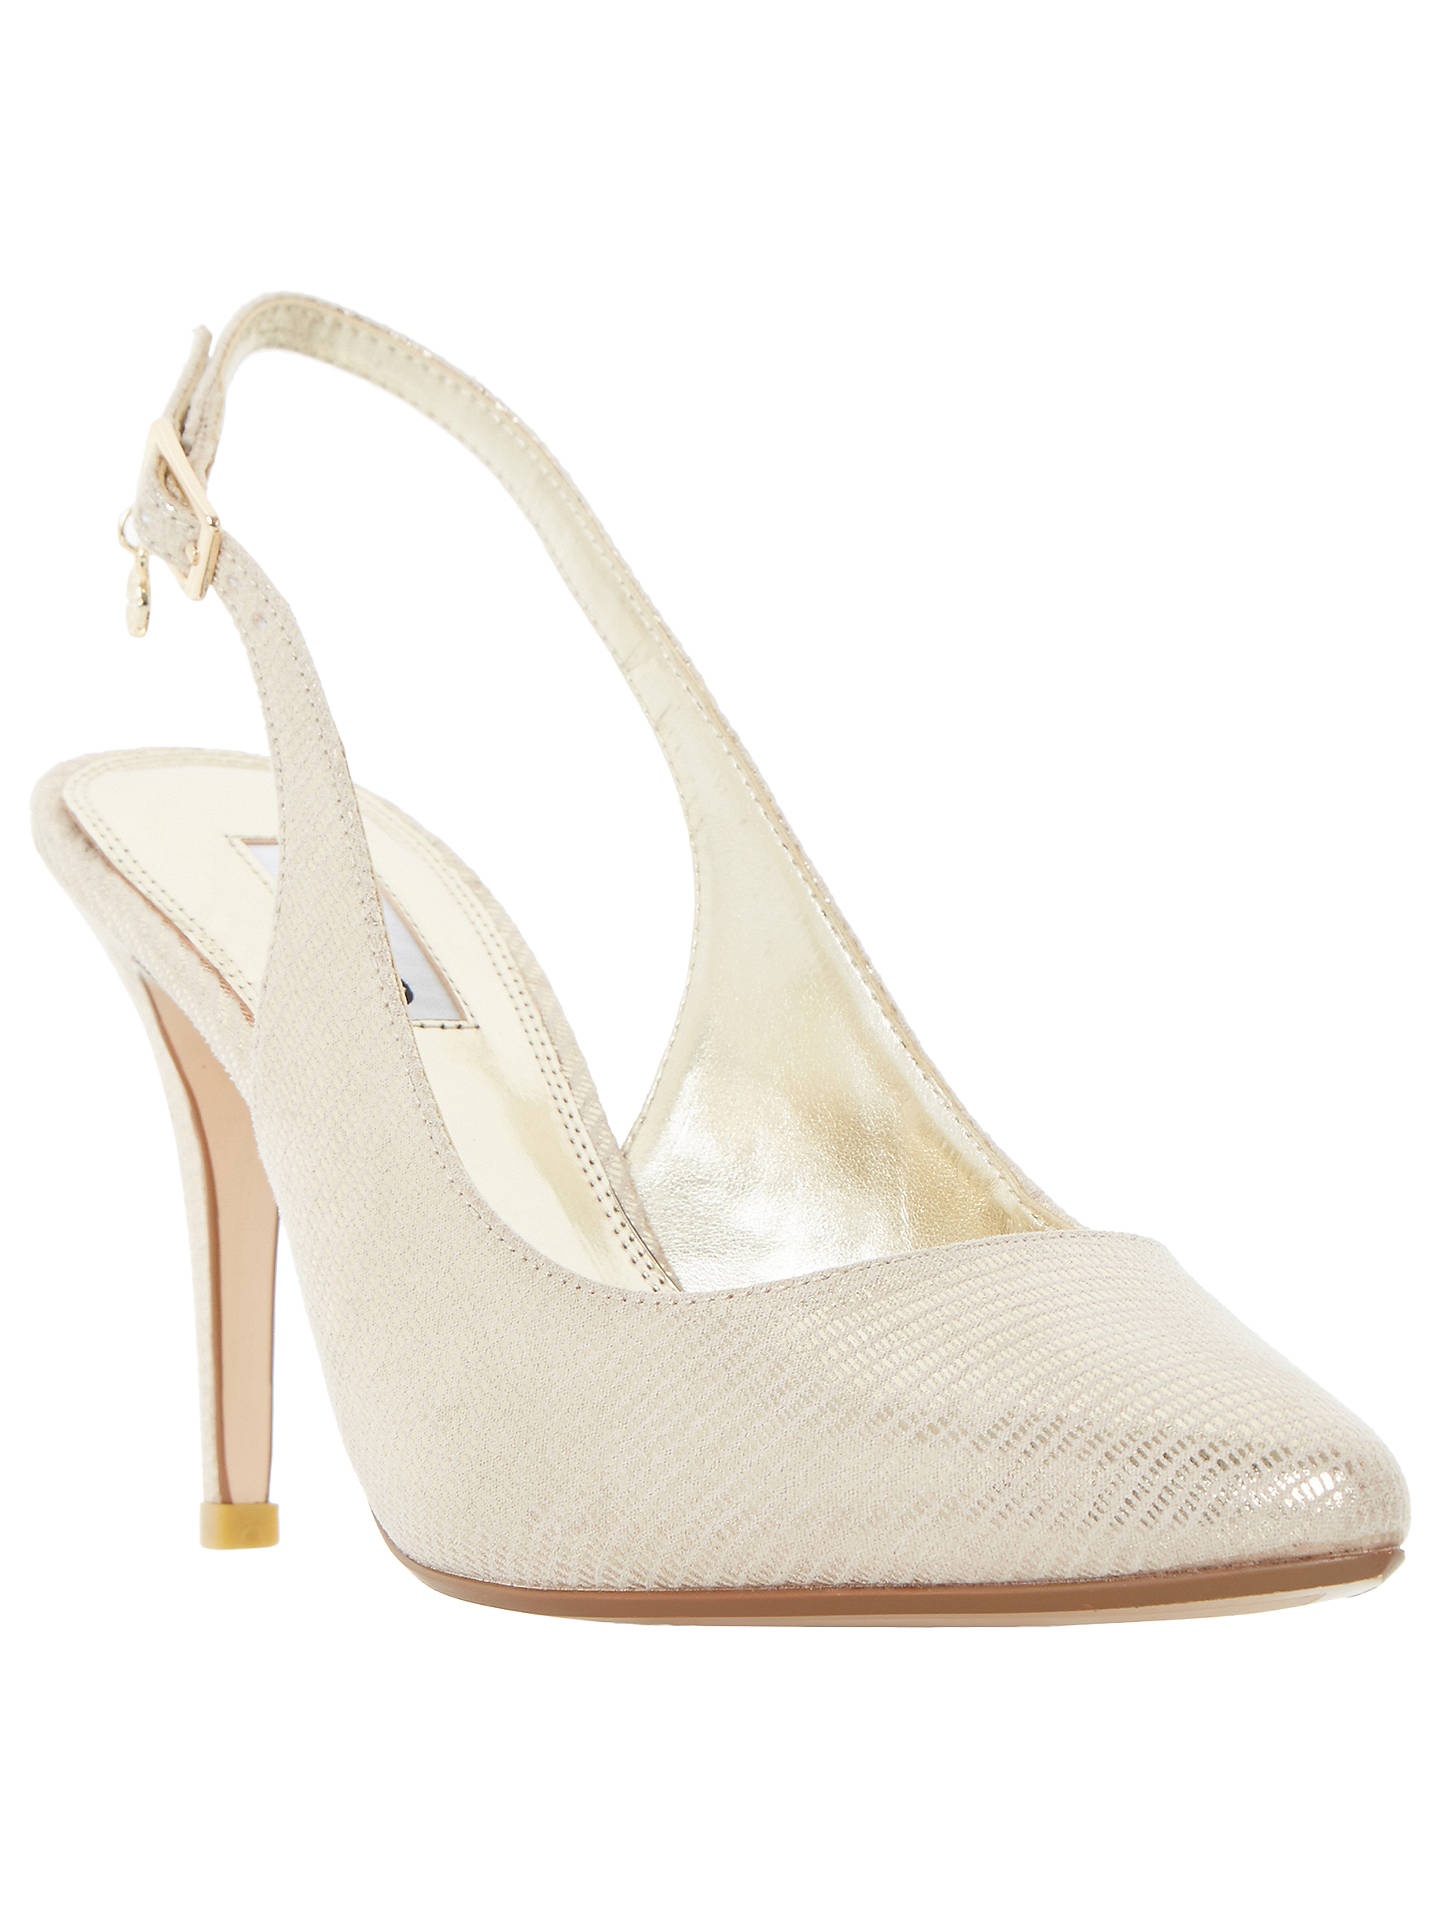 408da49b1c Buy Dune Cathy Slingback High Heel Court Shoes, Gold Reptile, 3 Online at  johnlewis ...